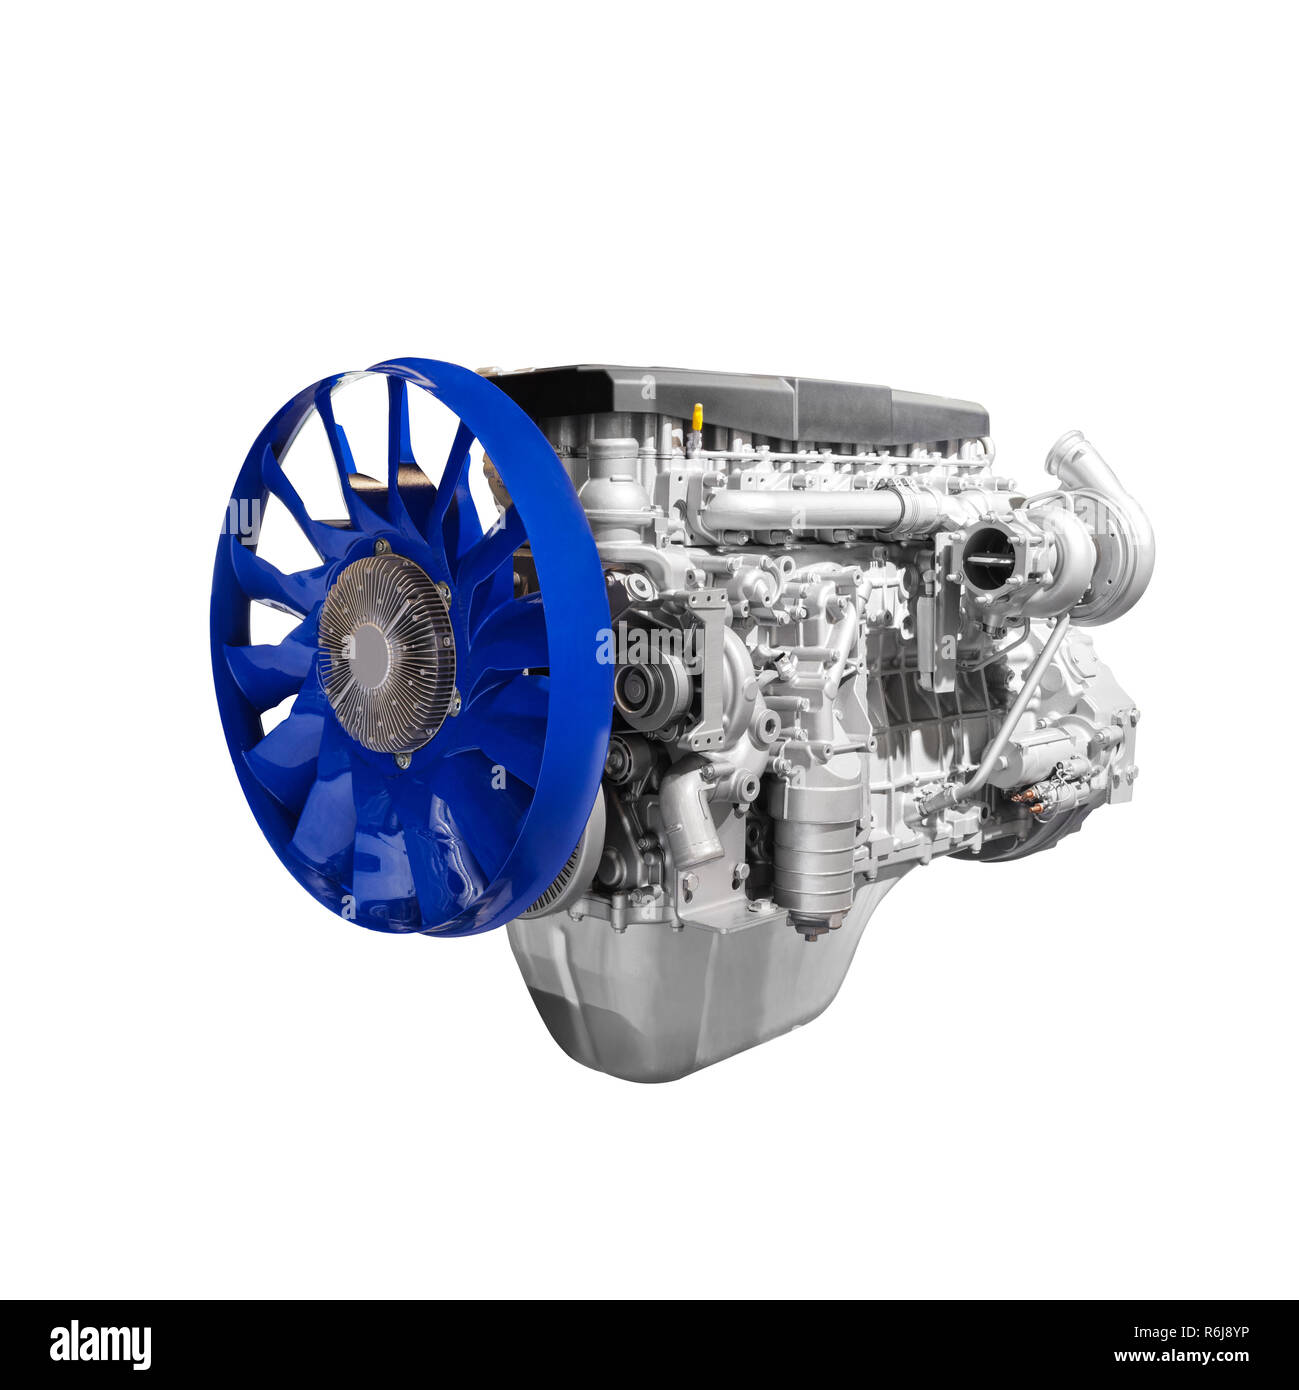 Modern heavy duty truck diesel turbodiesel engine isolated on white background - Stock Image